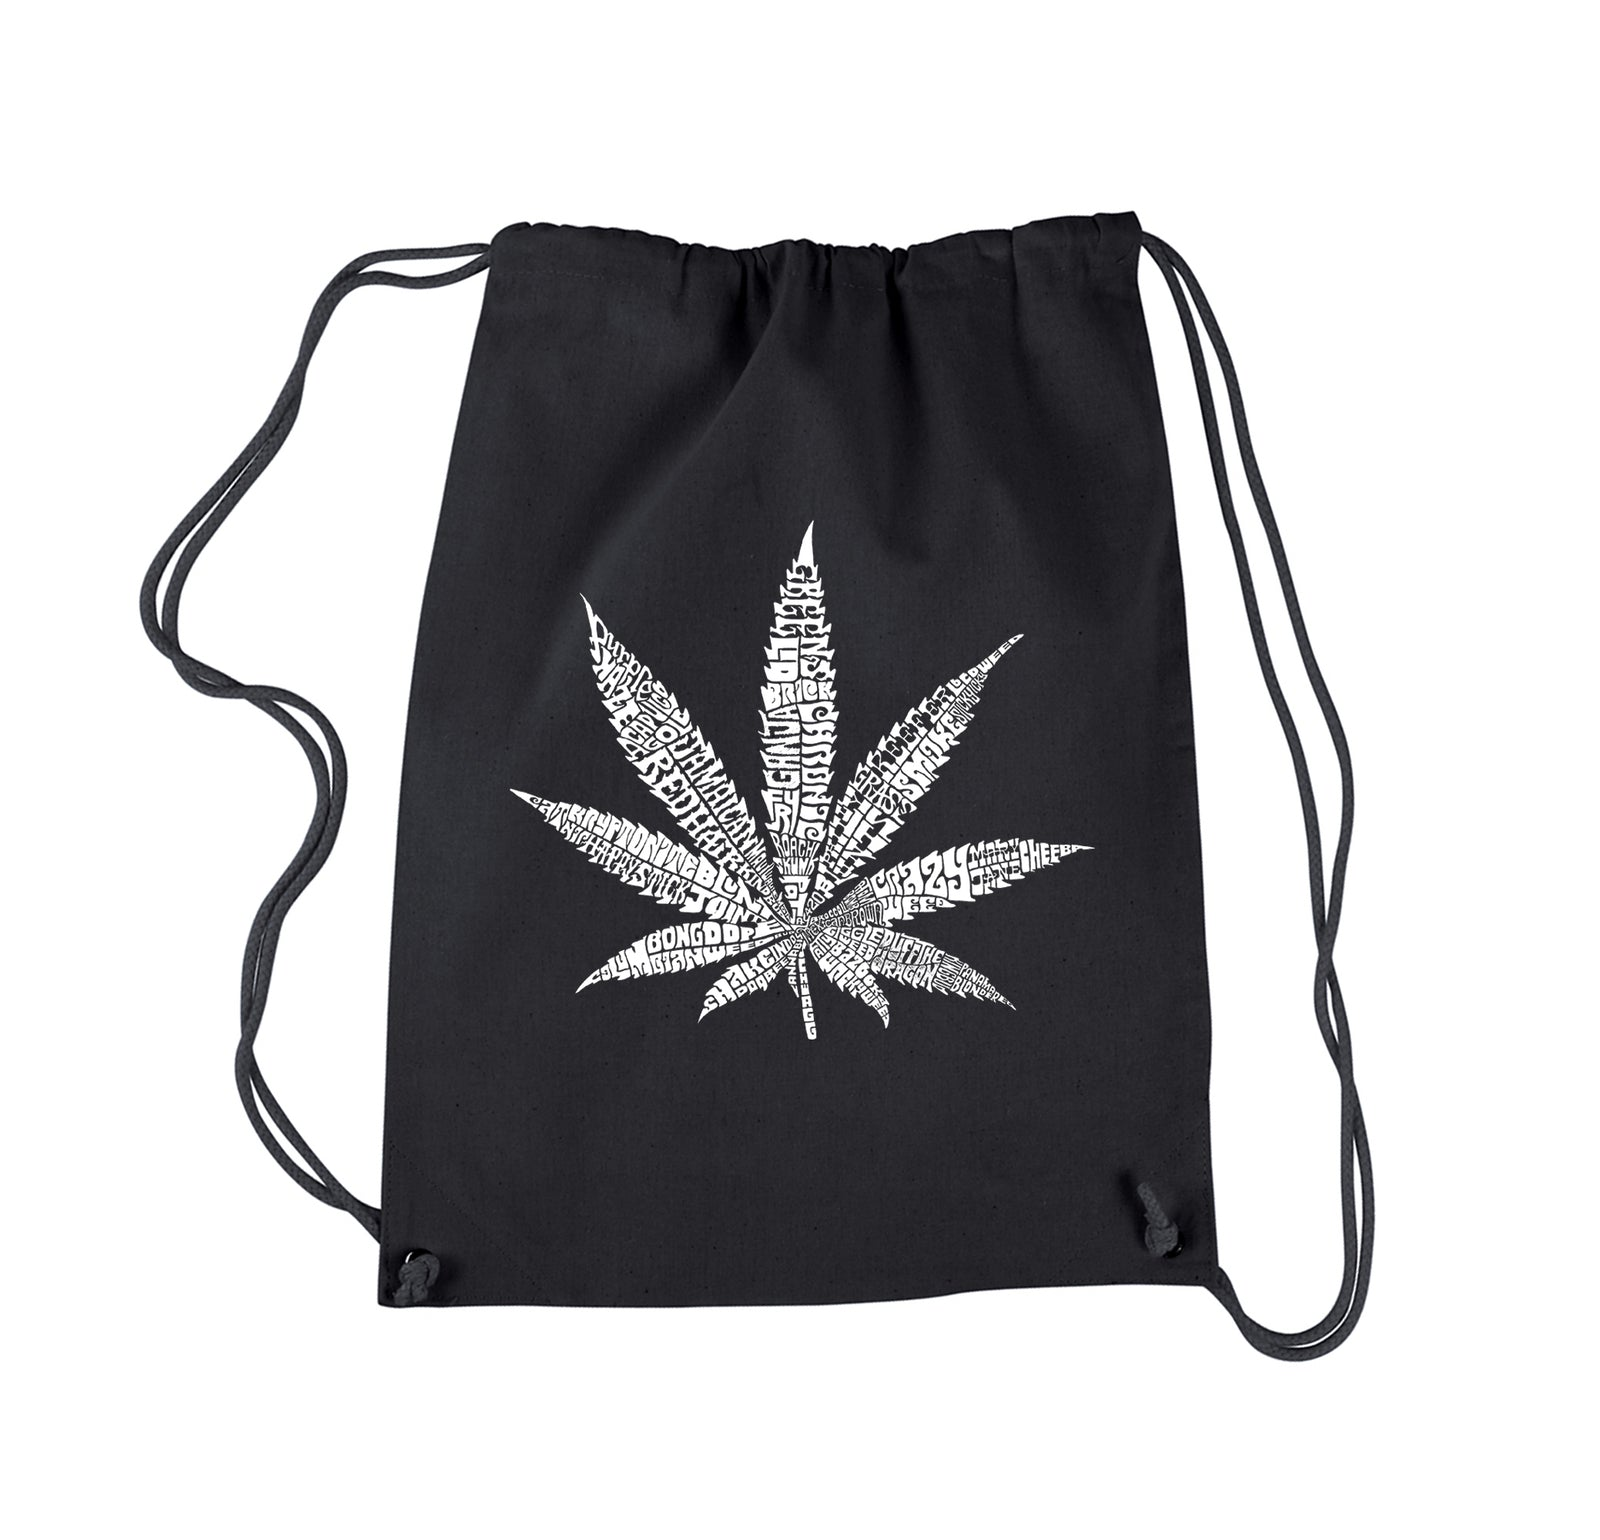 Drawstring Backpack - 50 DIFFERENT STREET TERMS FOR MARIJUANA